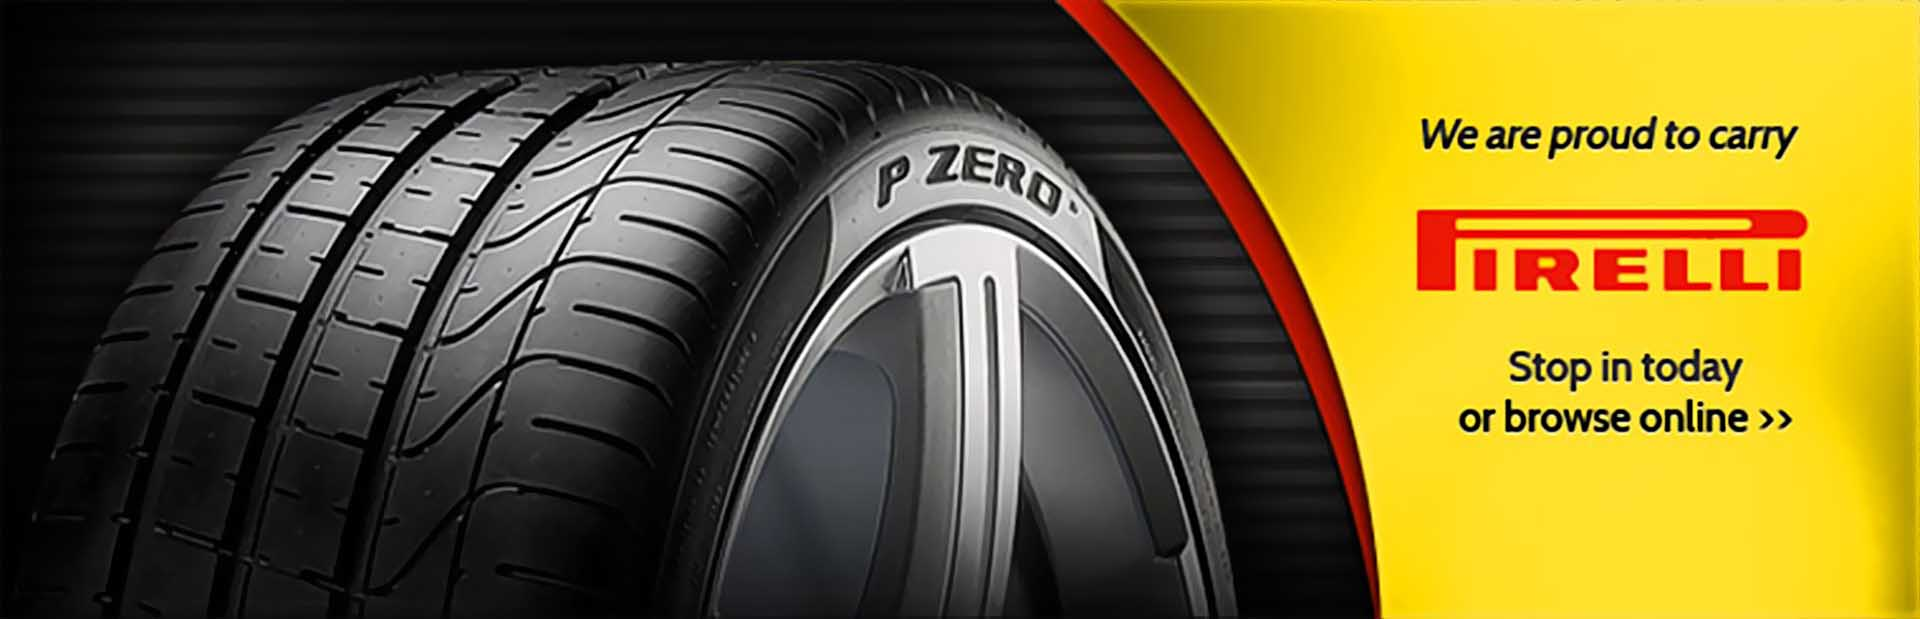 We are proud to carry Pirelli tires. Stop in today or click here to browse online.